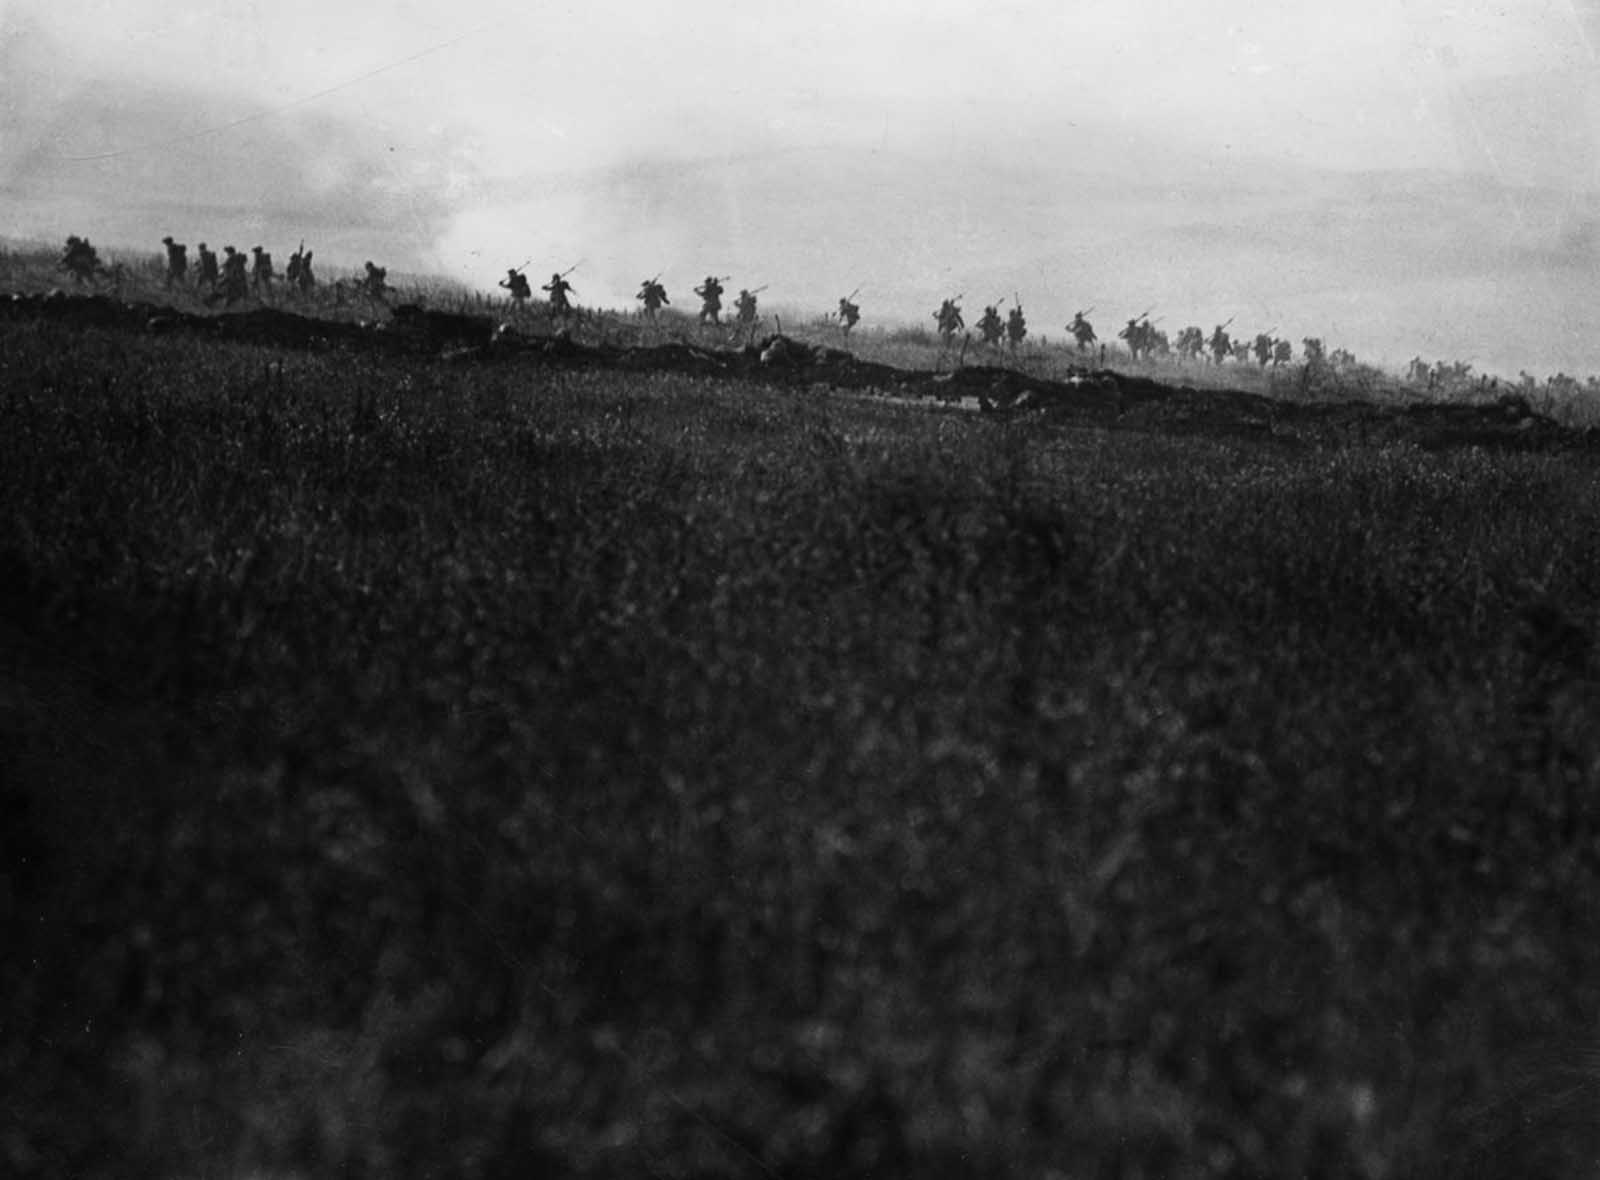 British 34th Division troops advance on the first day of the battle.